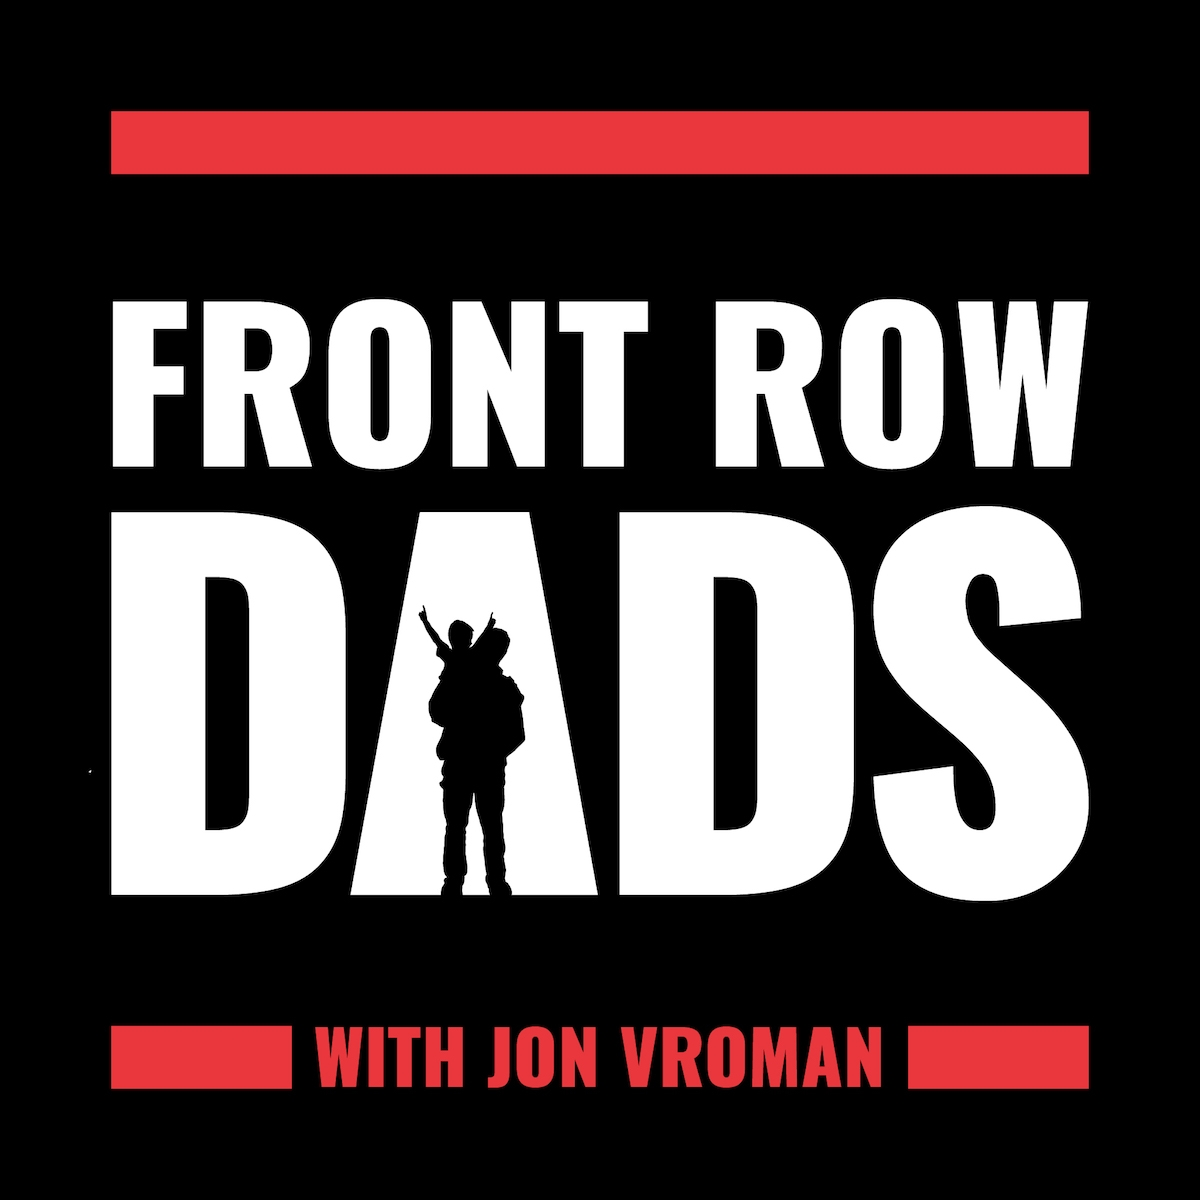 front-row-row-dads-podcast-cover.jpg